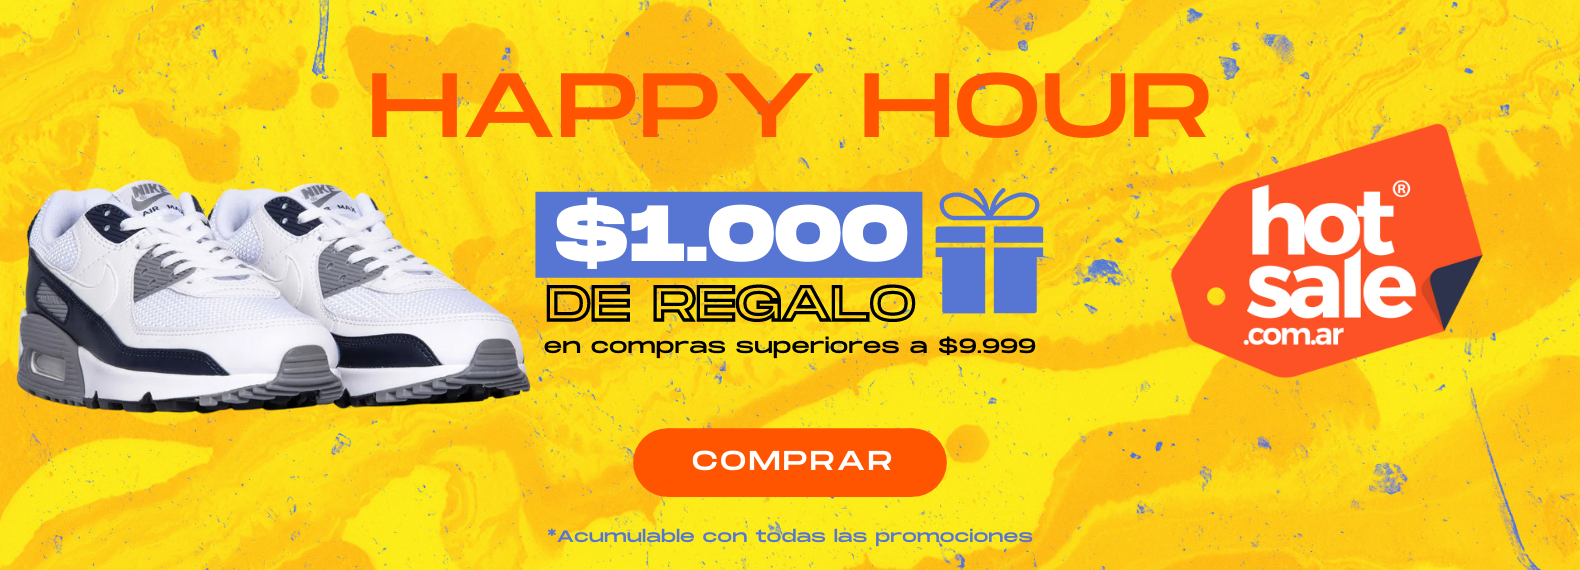 HOT SALE - Happy Hour